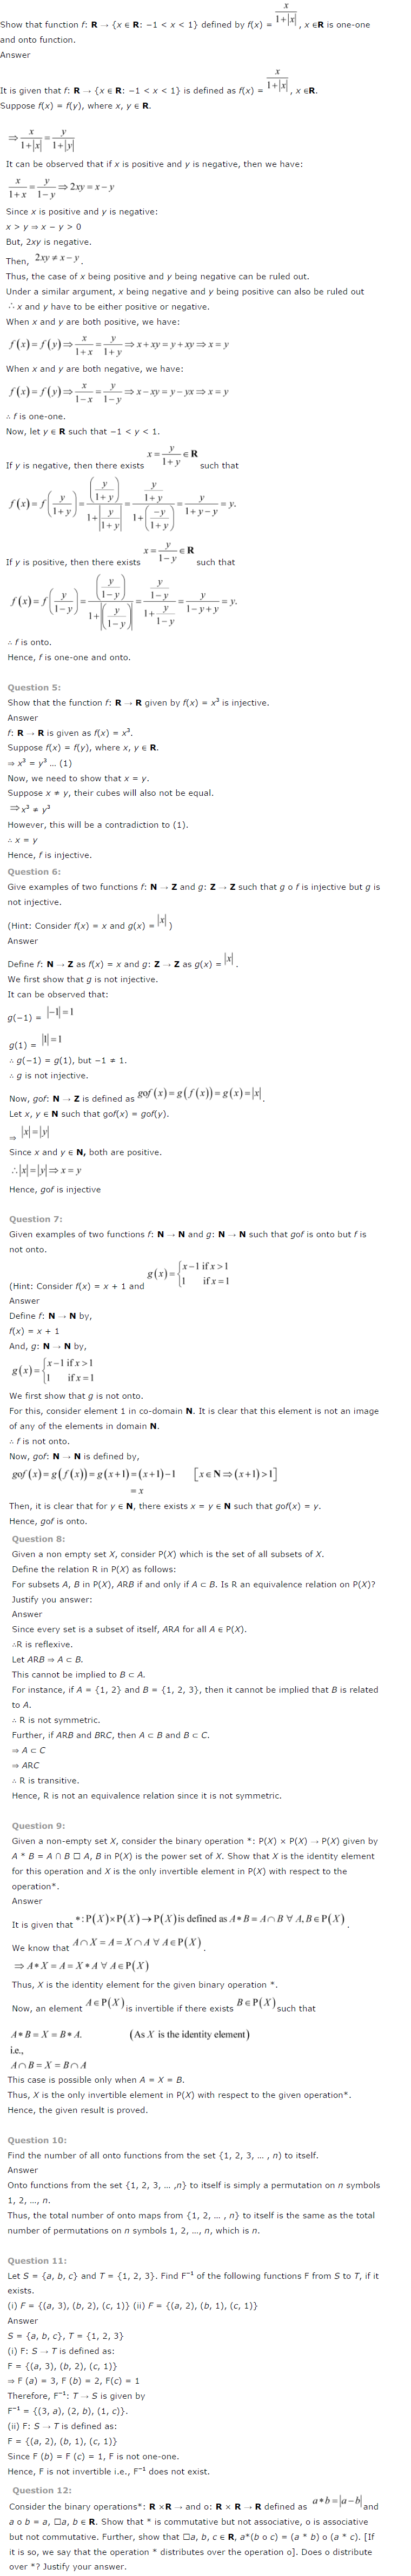 ncert solutions for class 12 maths chapter 1 pdf